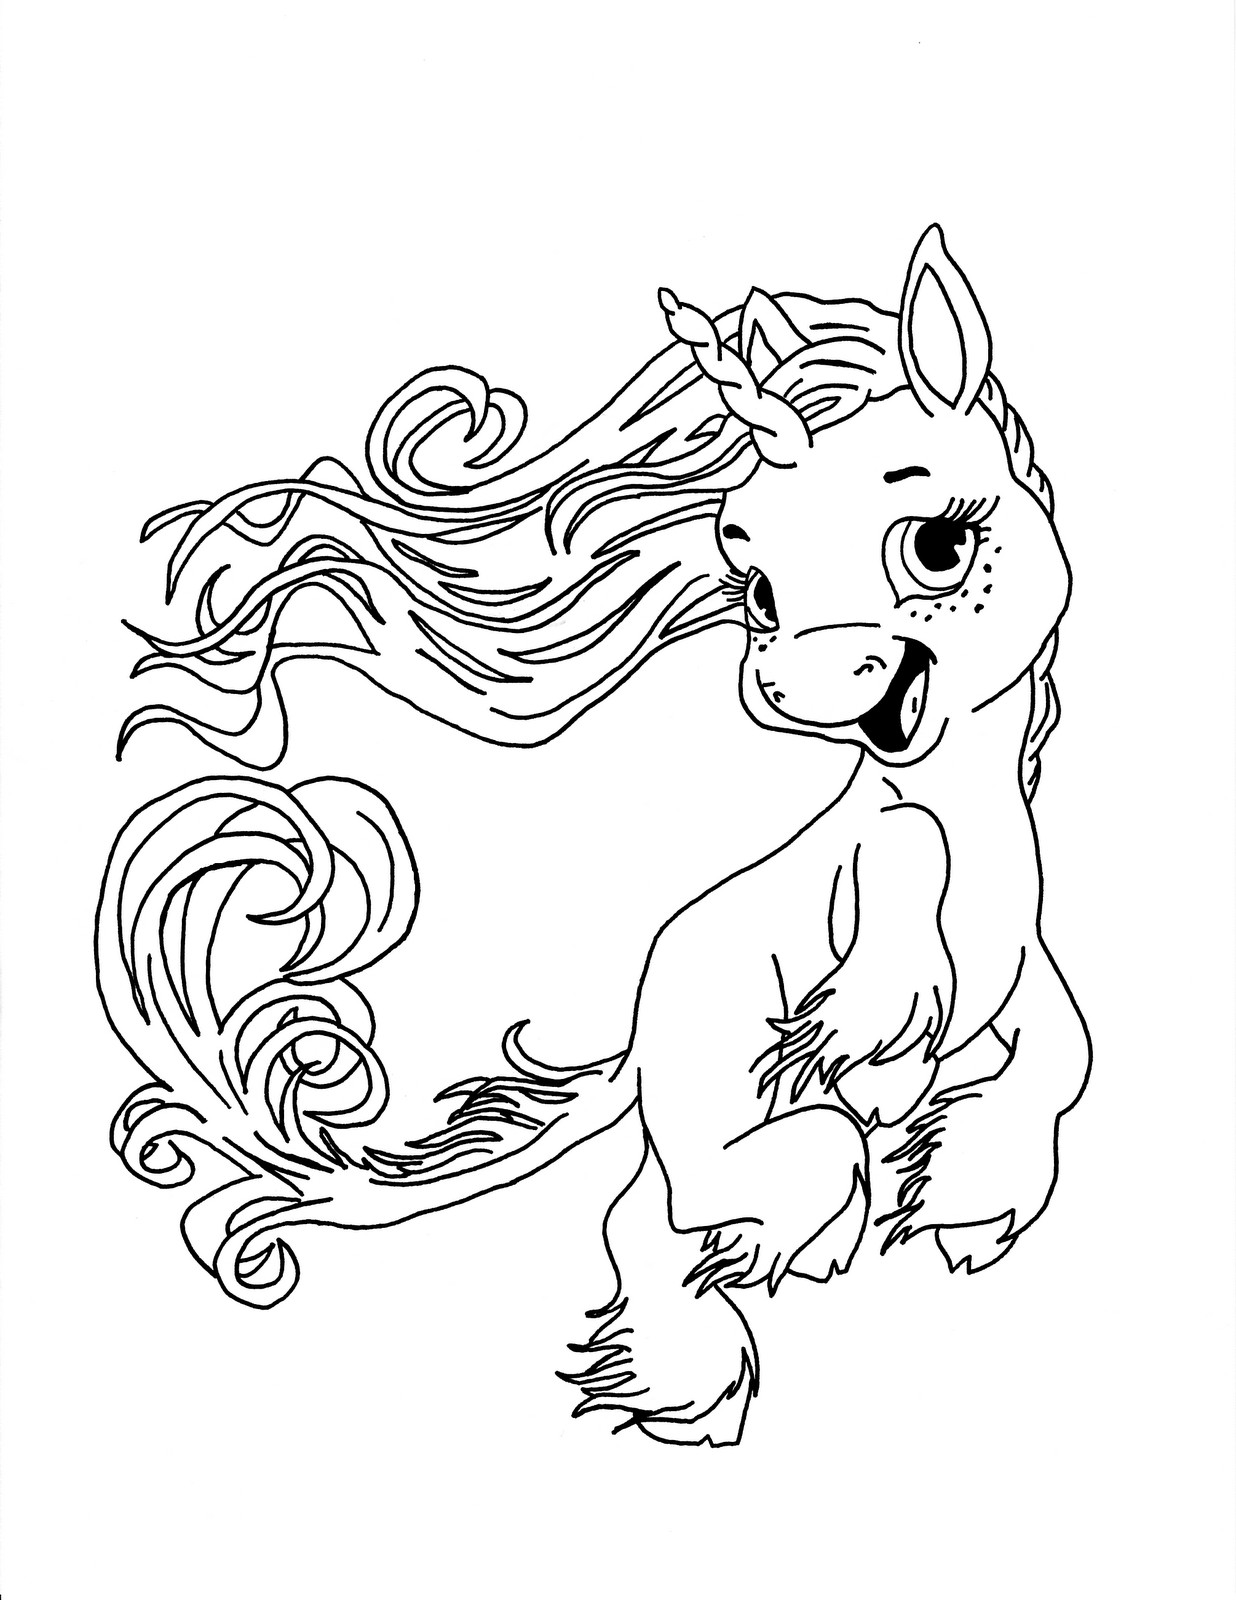 Coloring Sheets For Girls Unicorn  Unicorn Coloring Pages coloringsuite